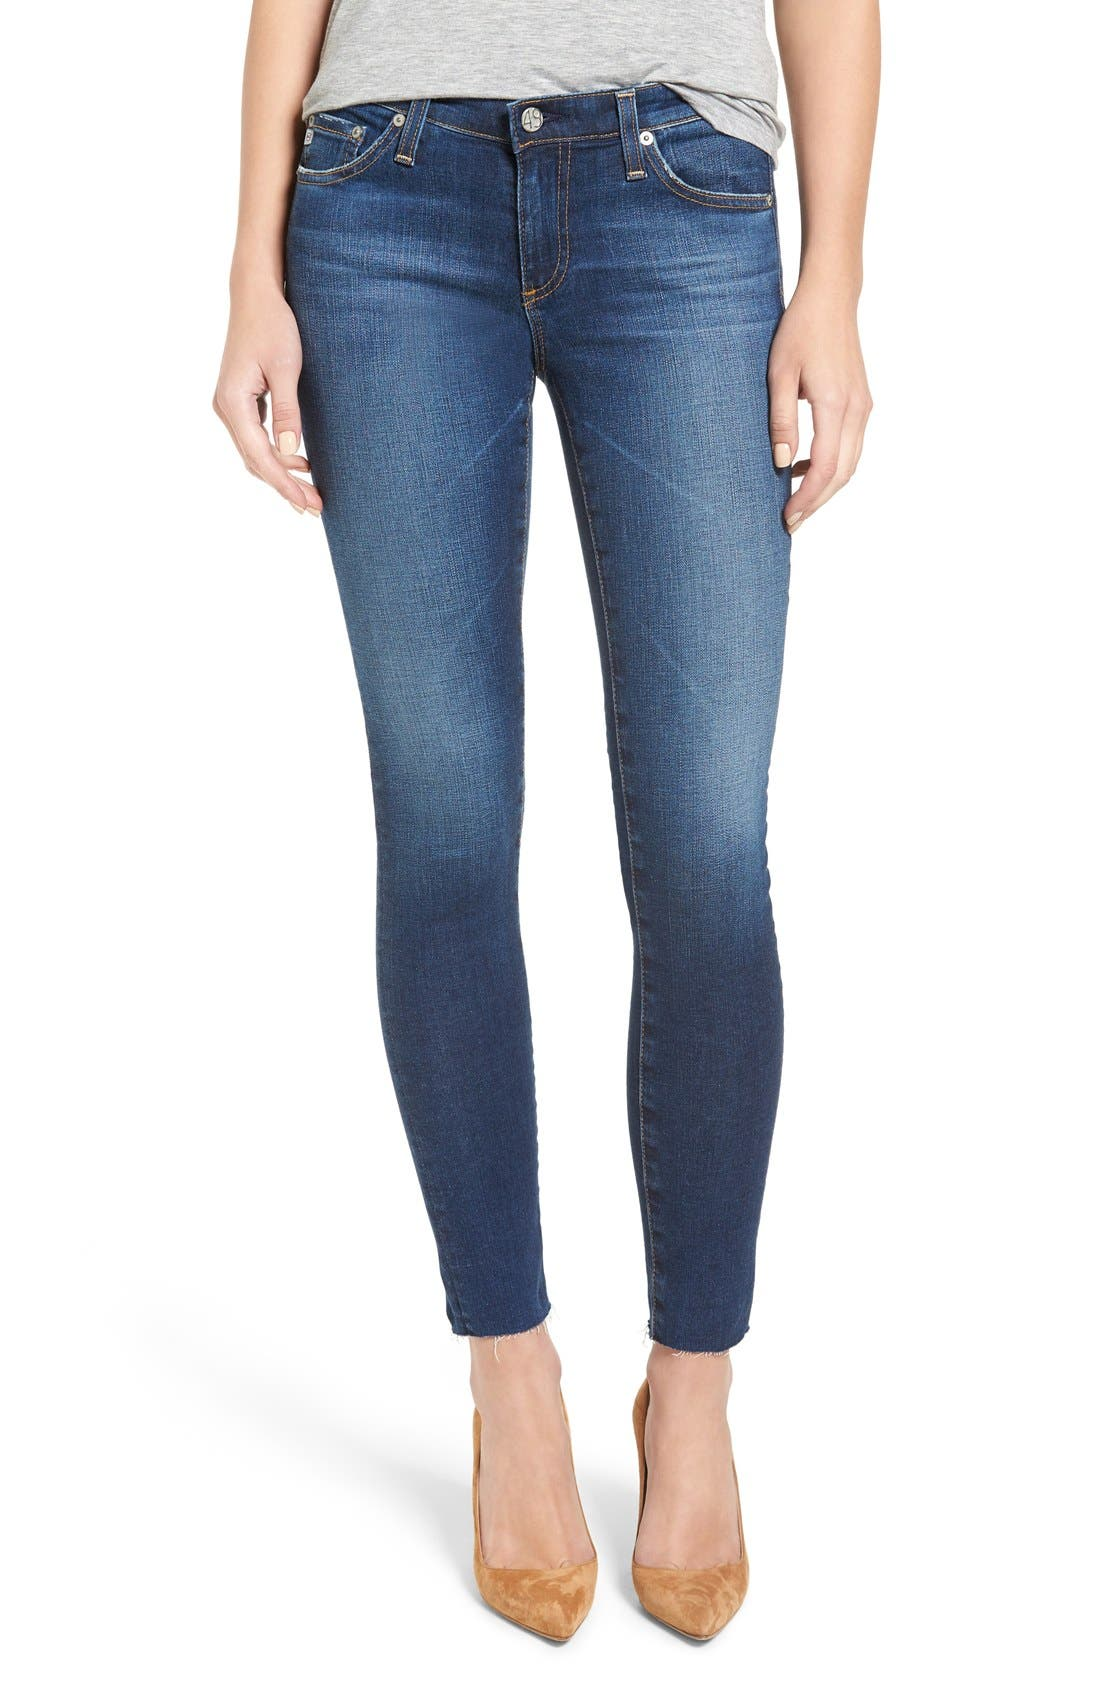 Alternate Image 1 Selected - AG 'The Legging' Ankle Jeans (7 Year Break Me Down)